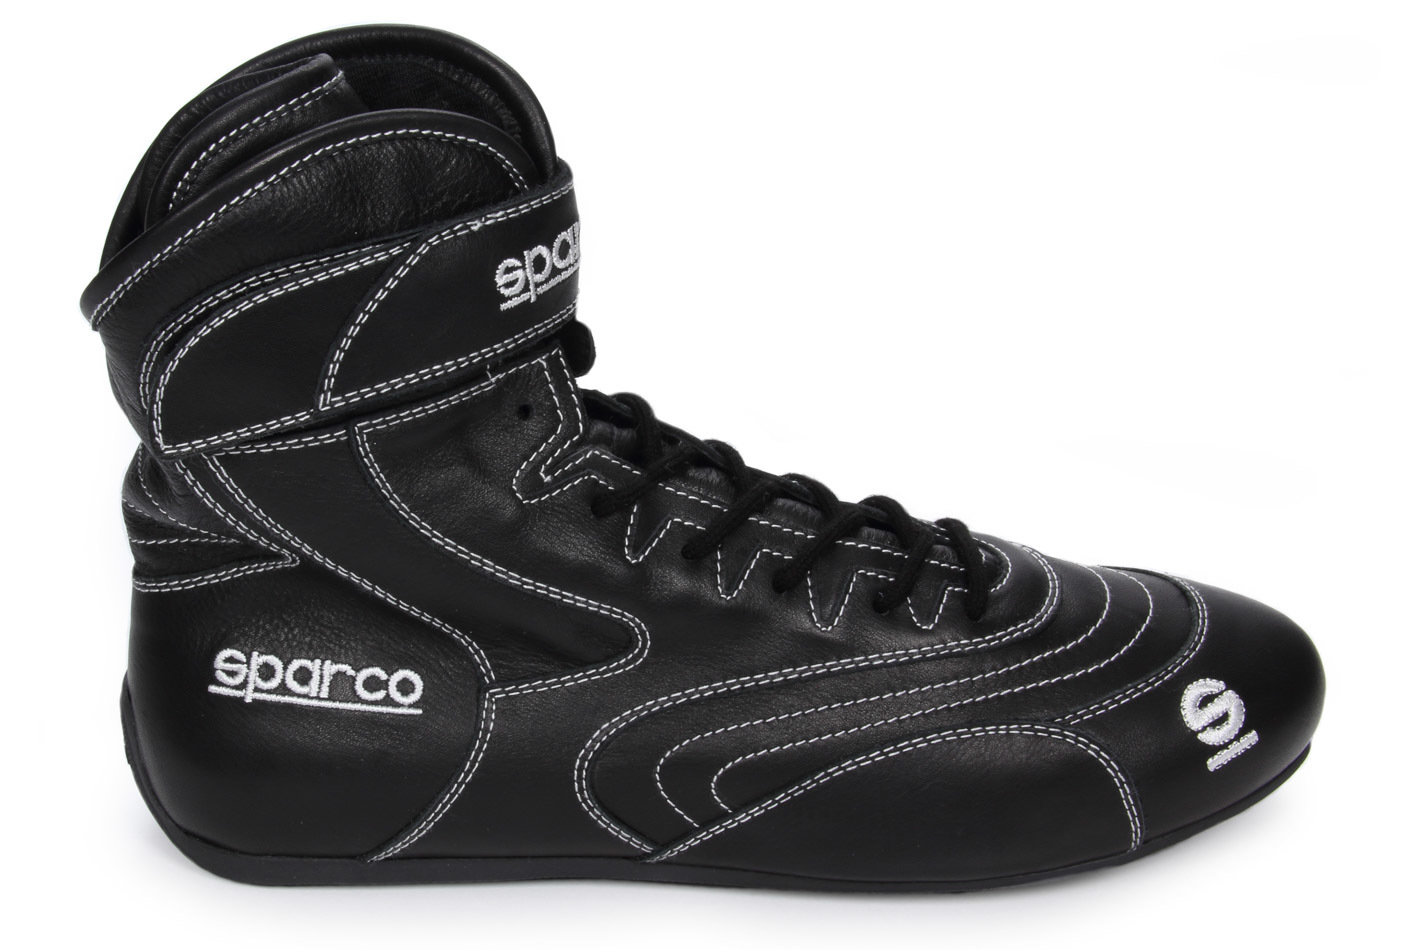 Sparco 00127343NR Shoe, SFI 20 Drag, Driving, High-Top, SFI 20, Leather Outer, Fire Retardant Inner, Black, Euro 43, Pair